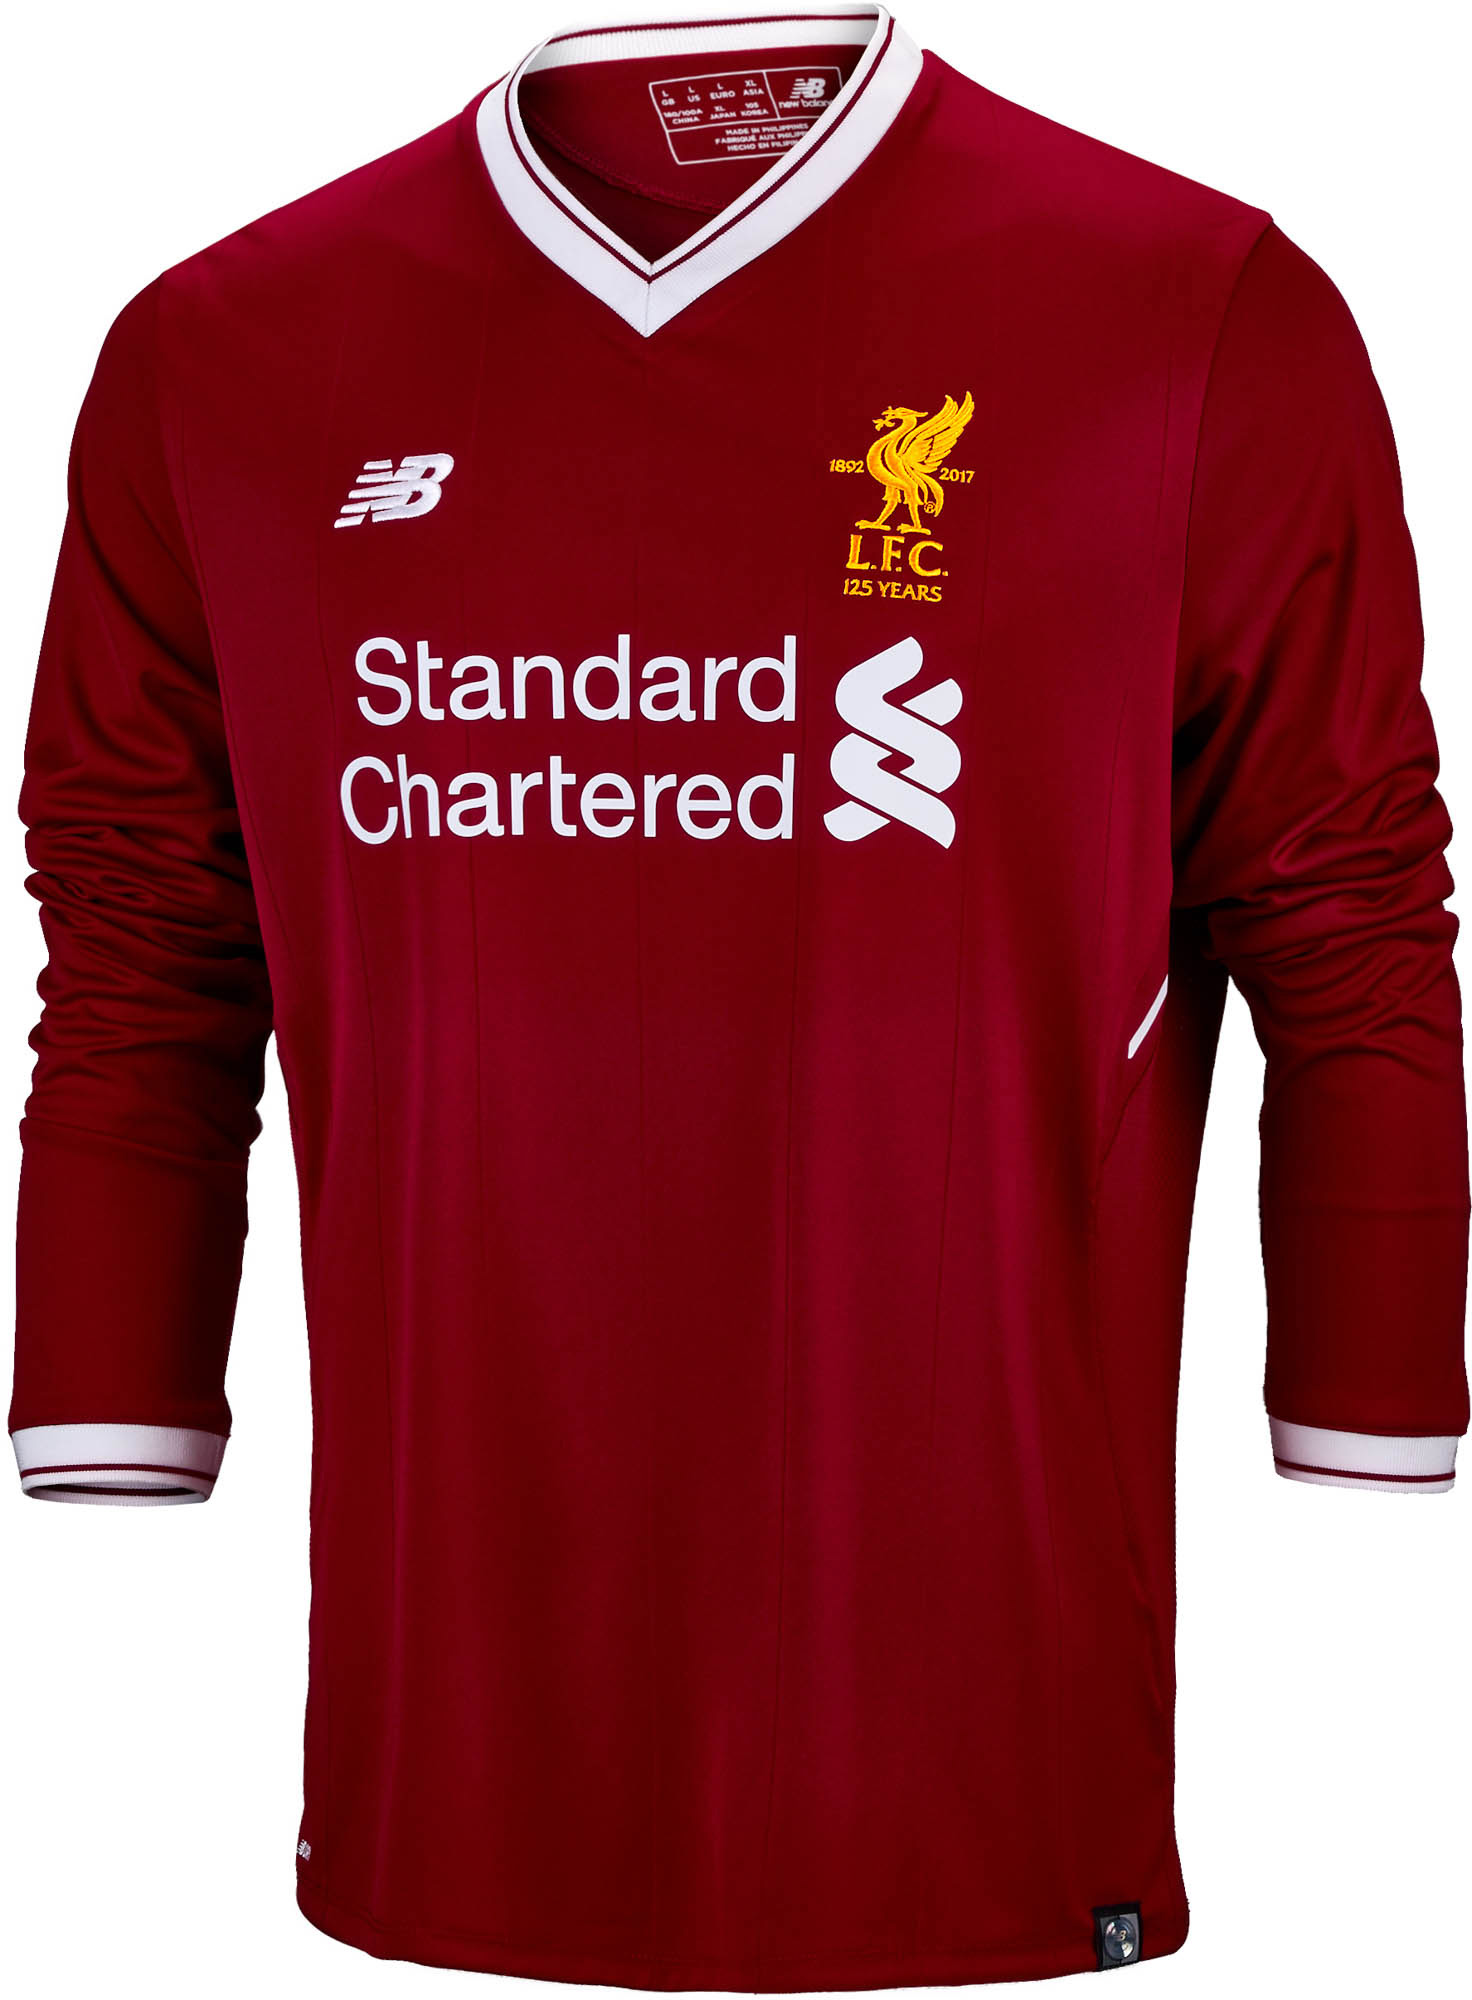 hot sale online 0b0b8 4347d New Balance Liverpool L/S Home Jersey 2017-18 - Soccer ...